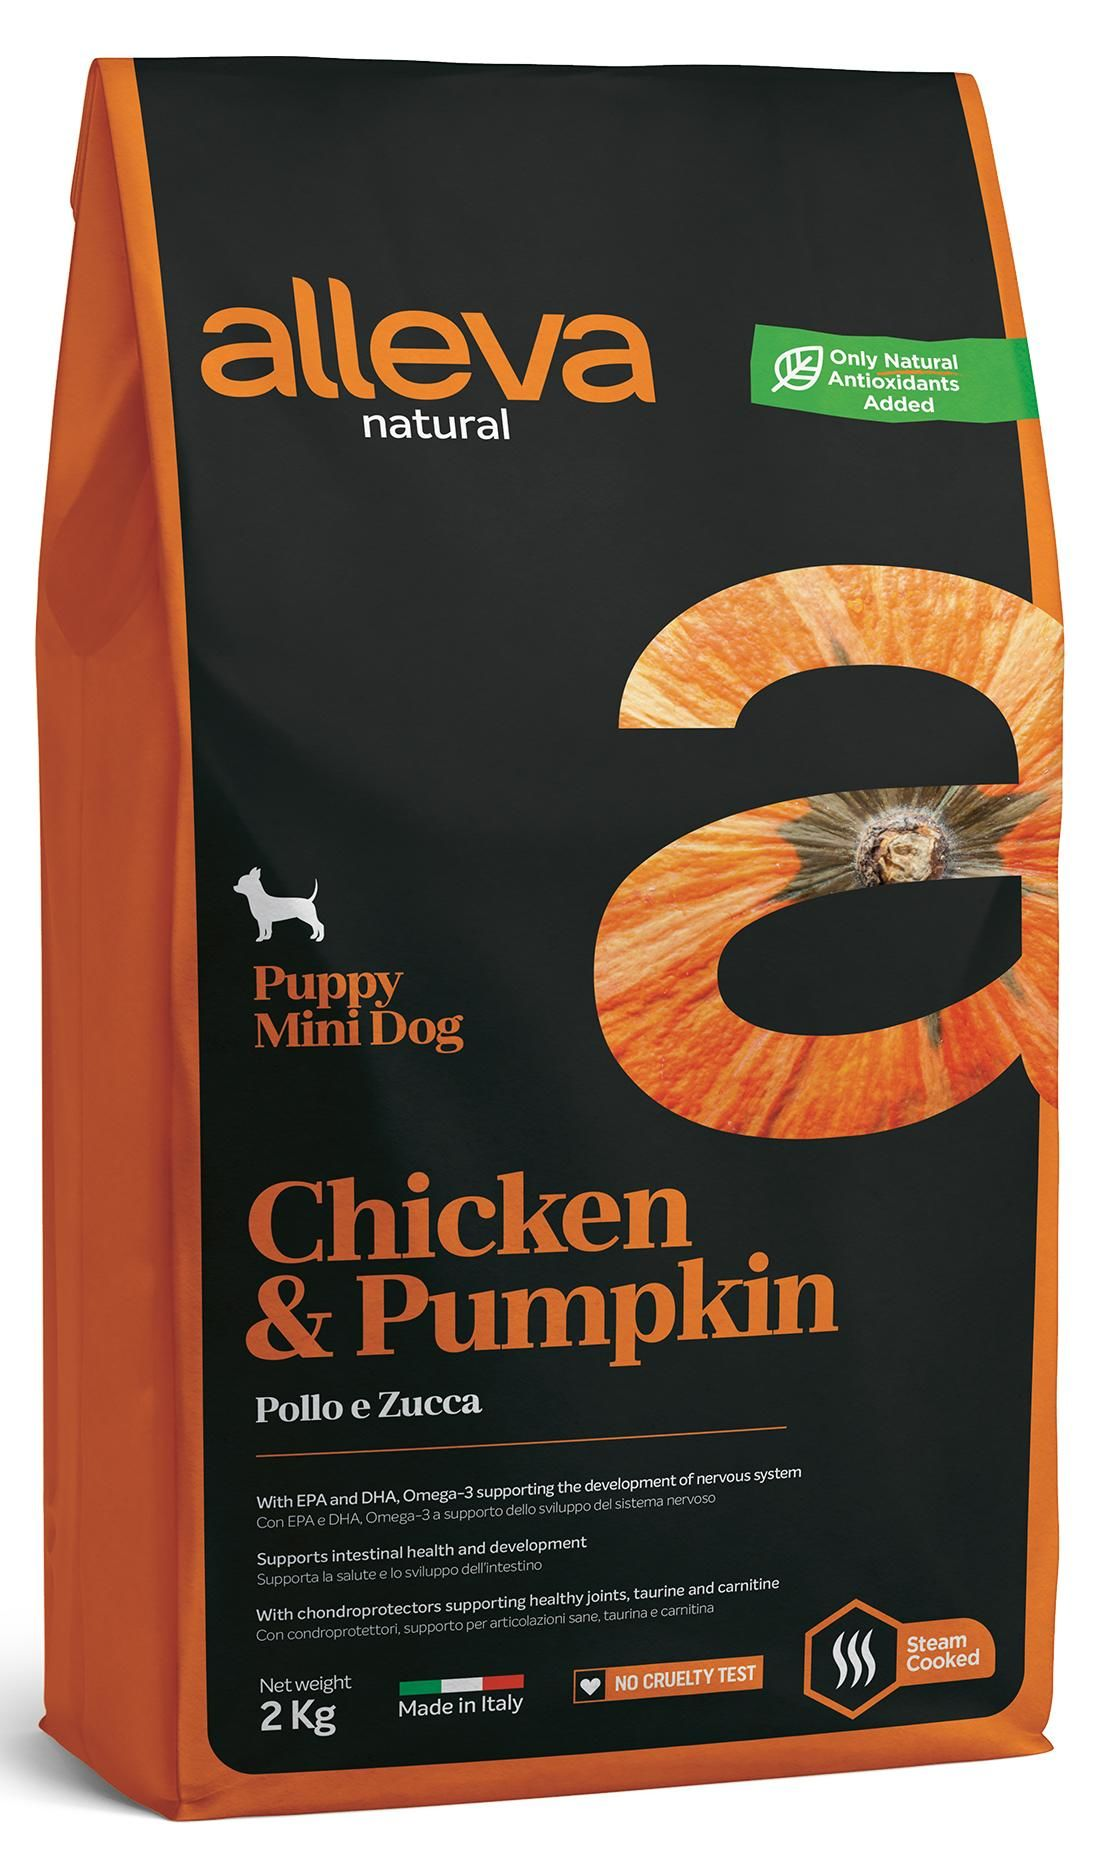 Alleva Natural Chicken & Pumpkin Puppy Mini